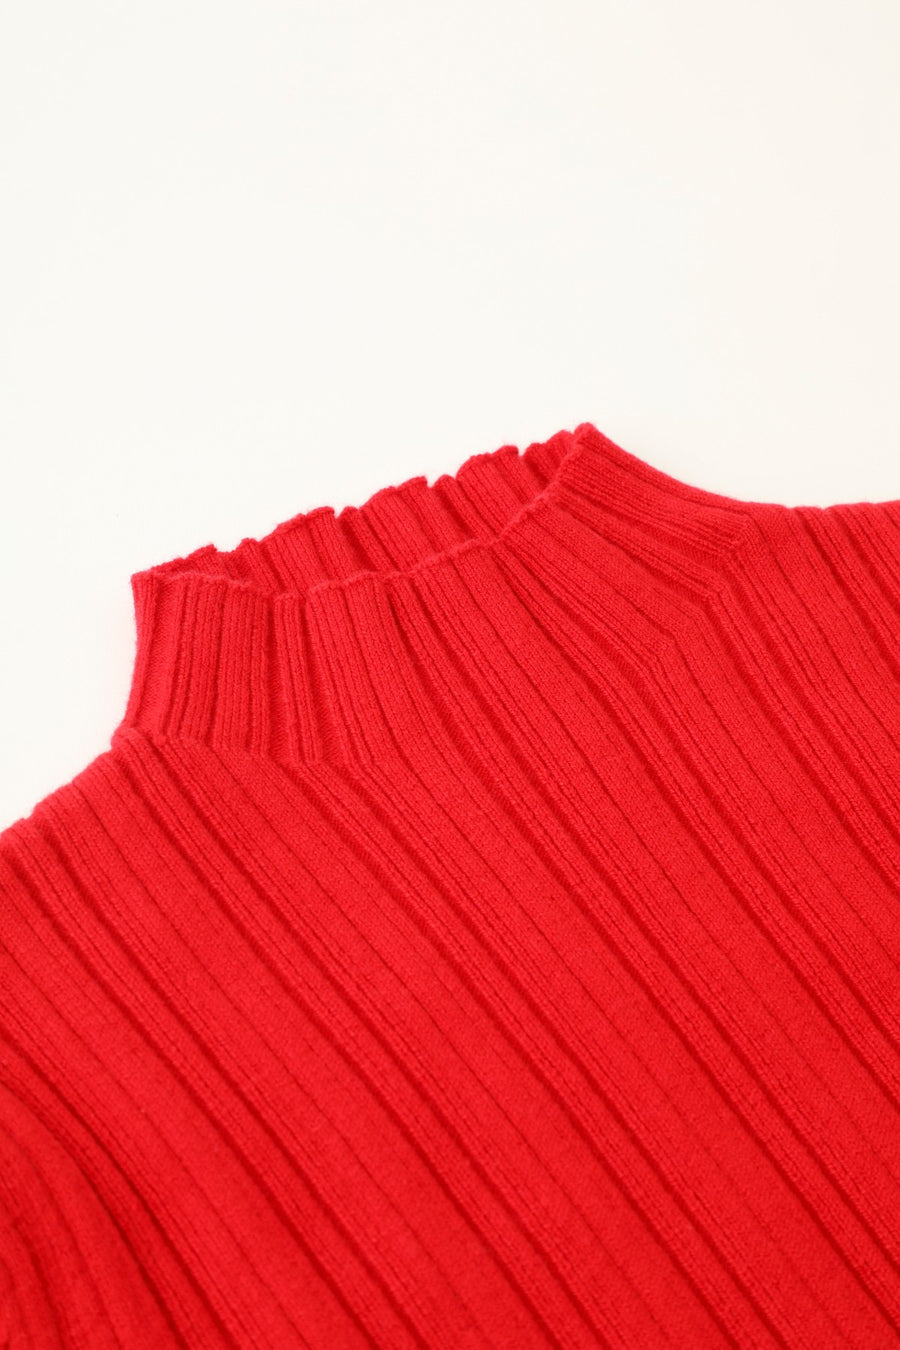 BOTTLENECK KNIT TOP - X-Girl